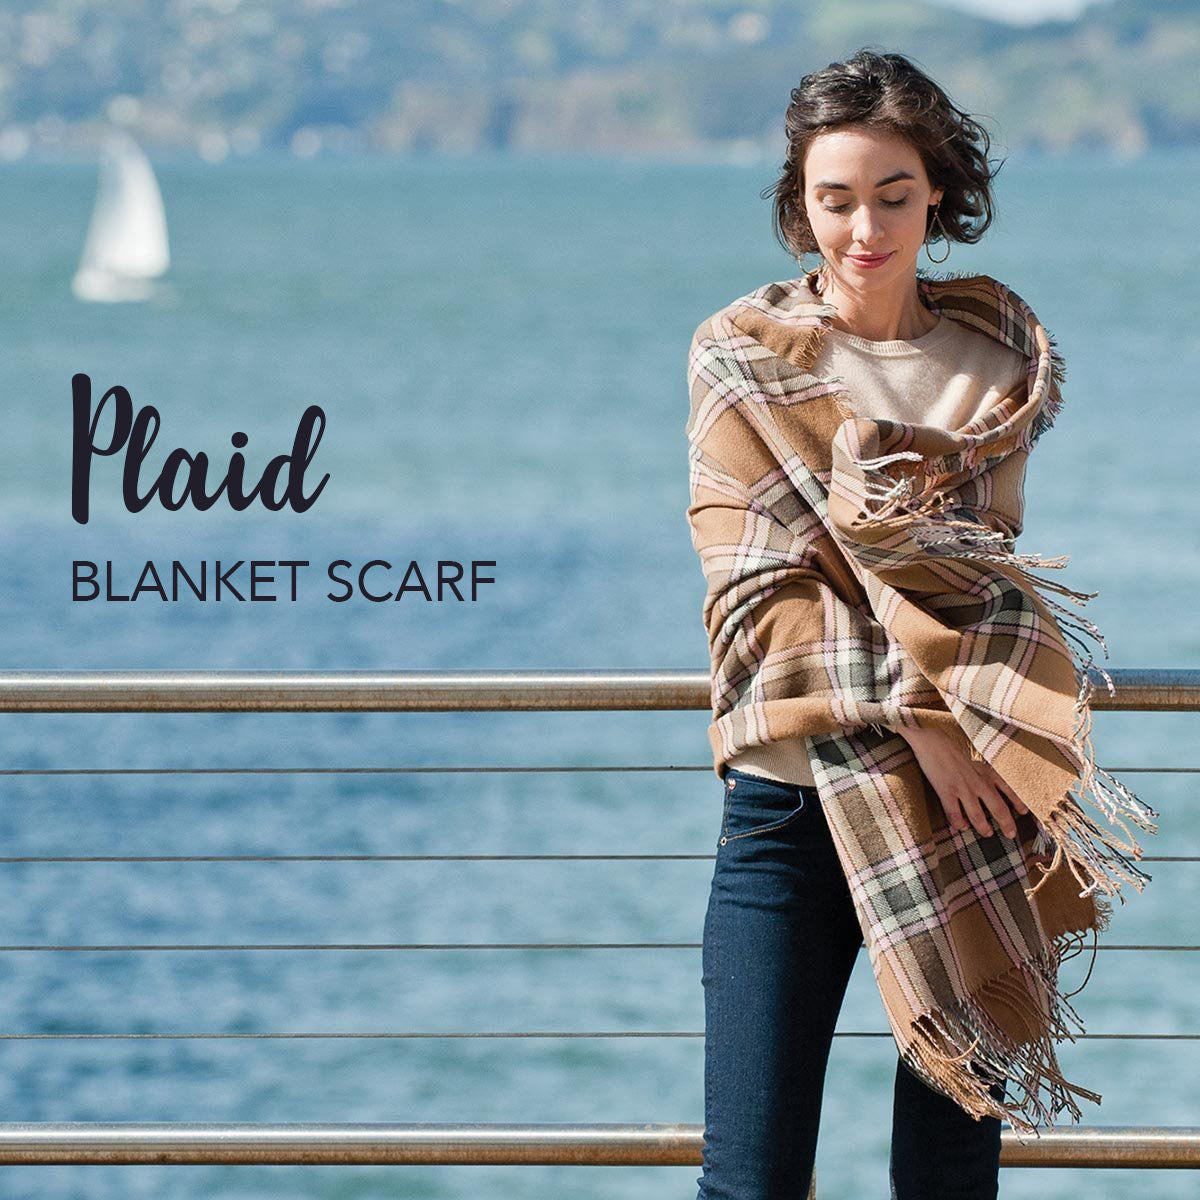 woman wearing a tan plaid blanket scarf by the bay